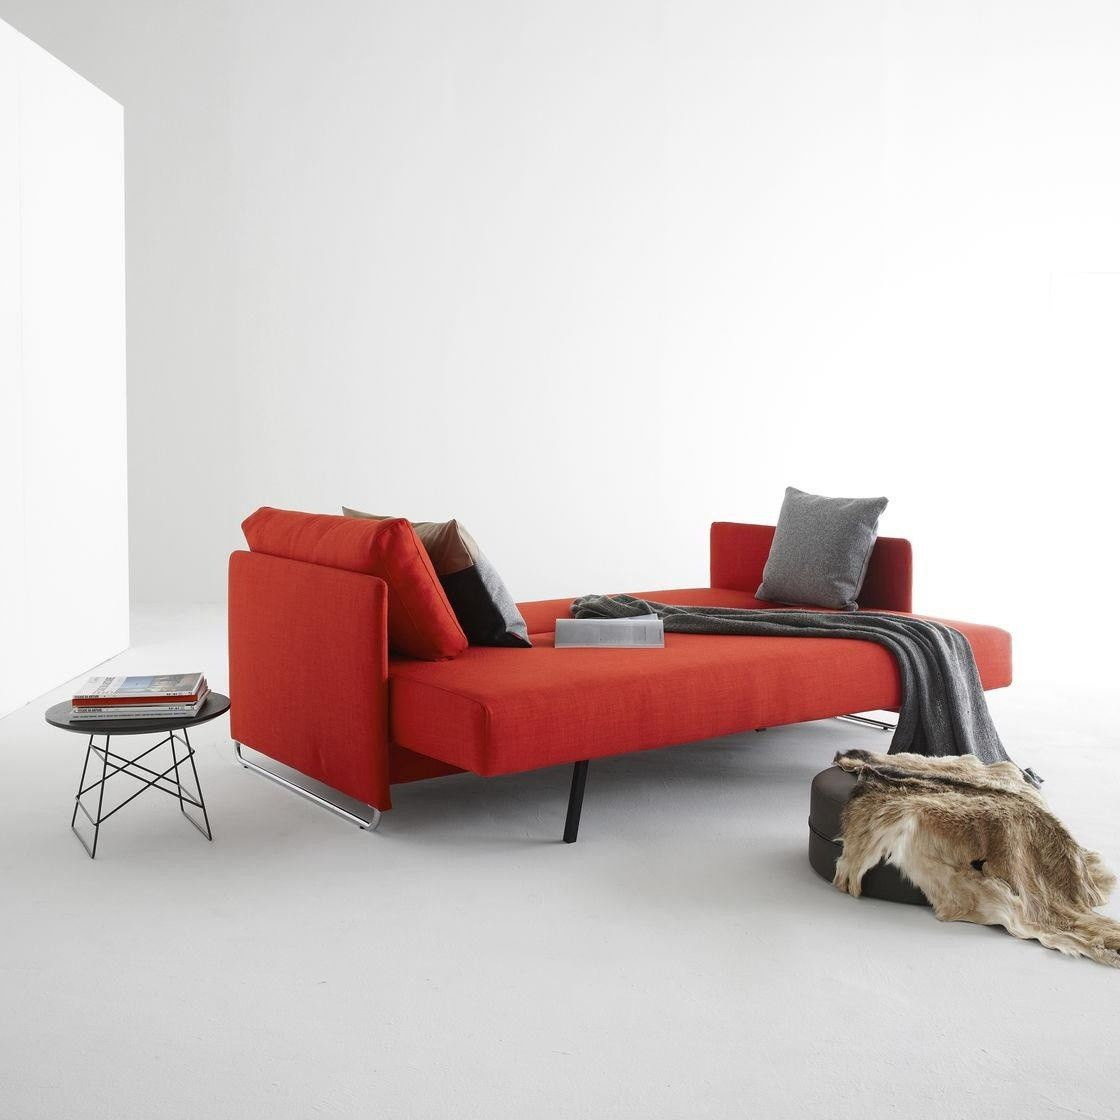 spanish sofa brand patio clearance upend bed innovation ambientedirect